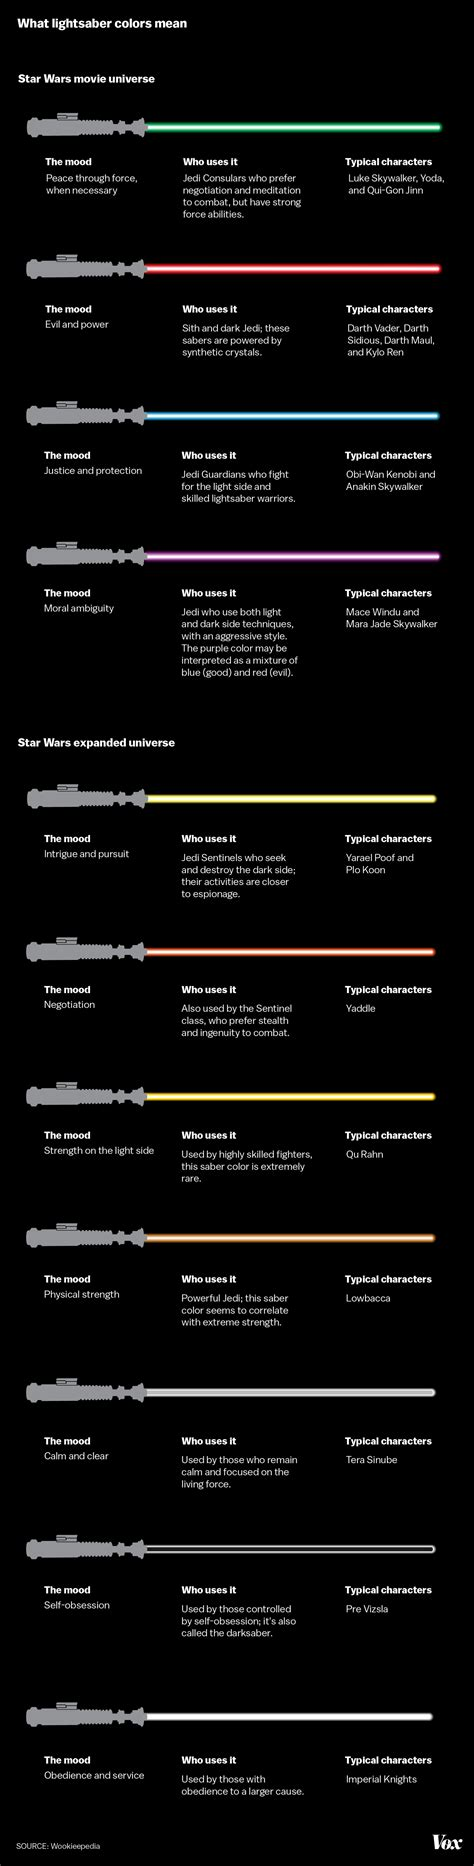 lightsaber color meaning lightsaber silver color meaning